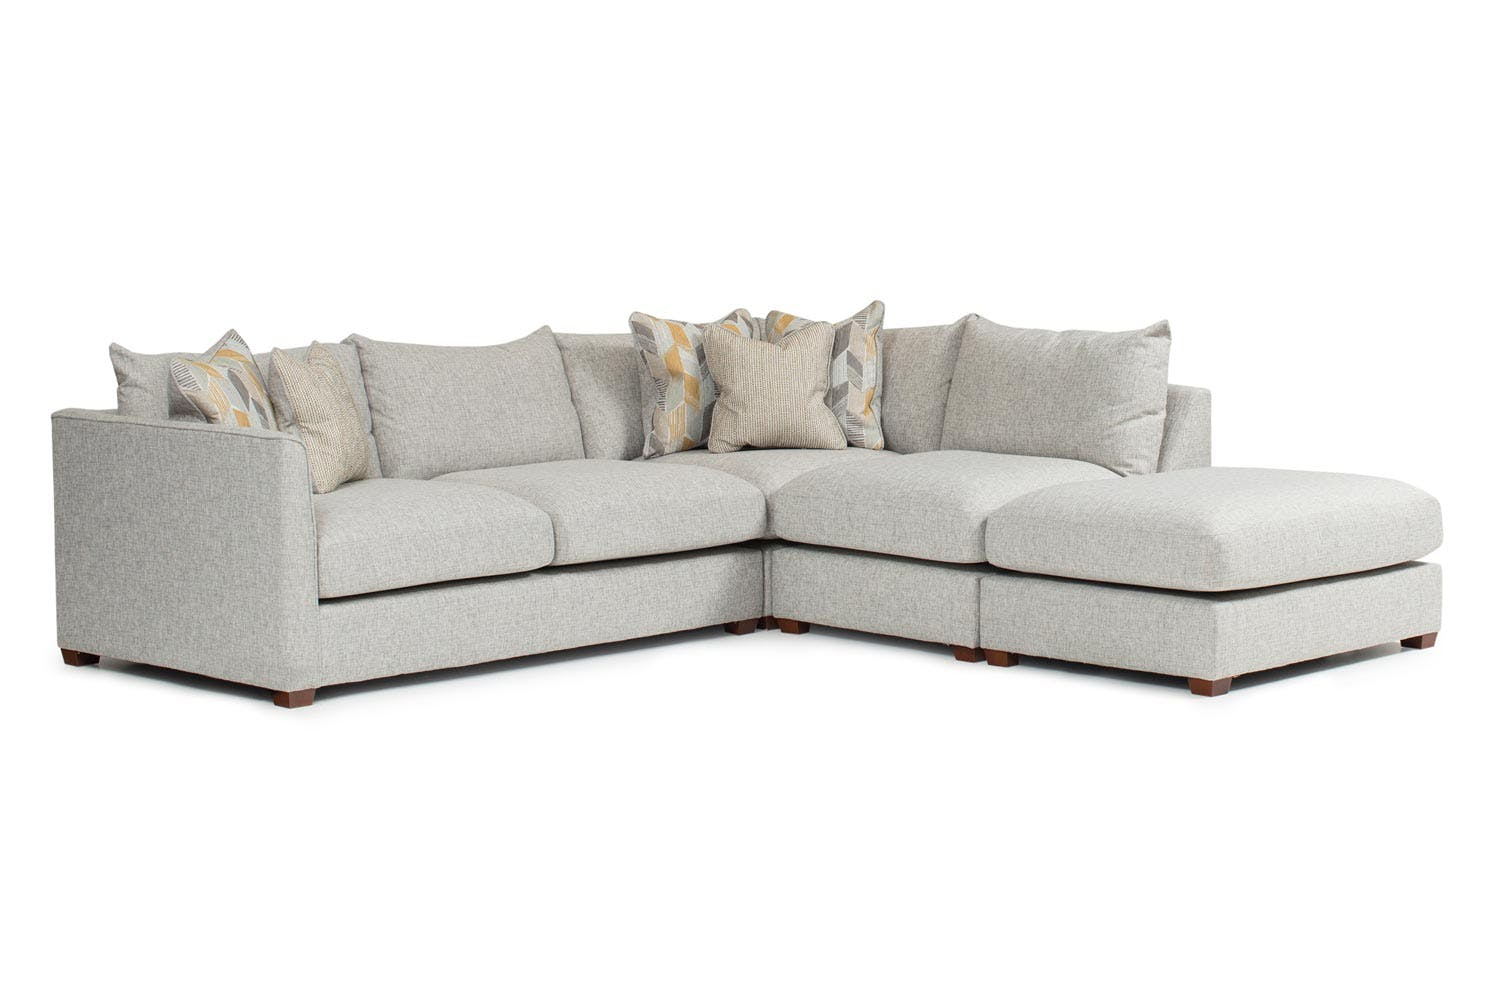 Faye corner sofa with chaise harvey norman ireland for Couch und sofa fürth